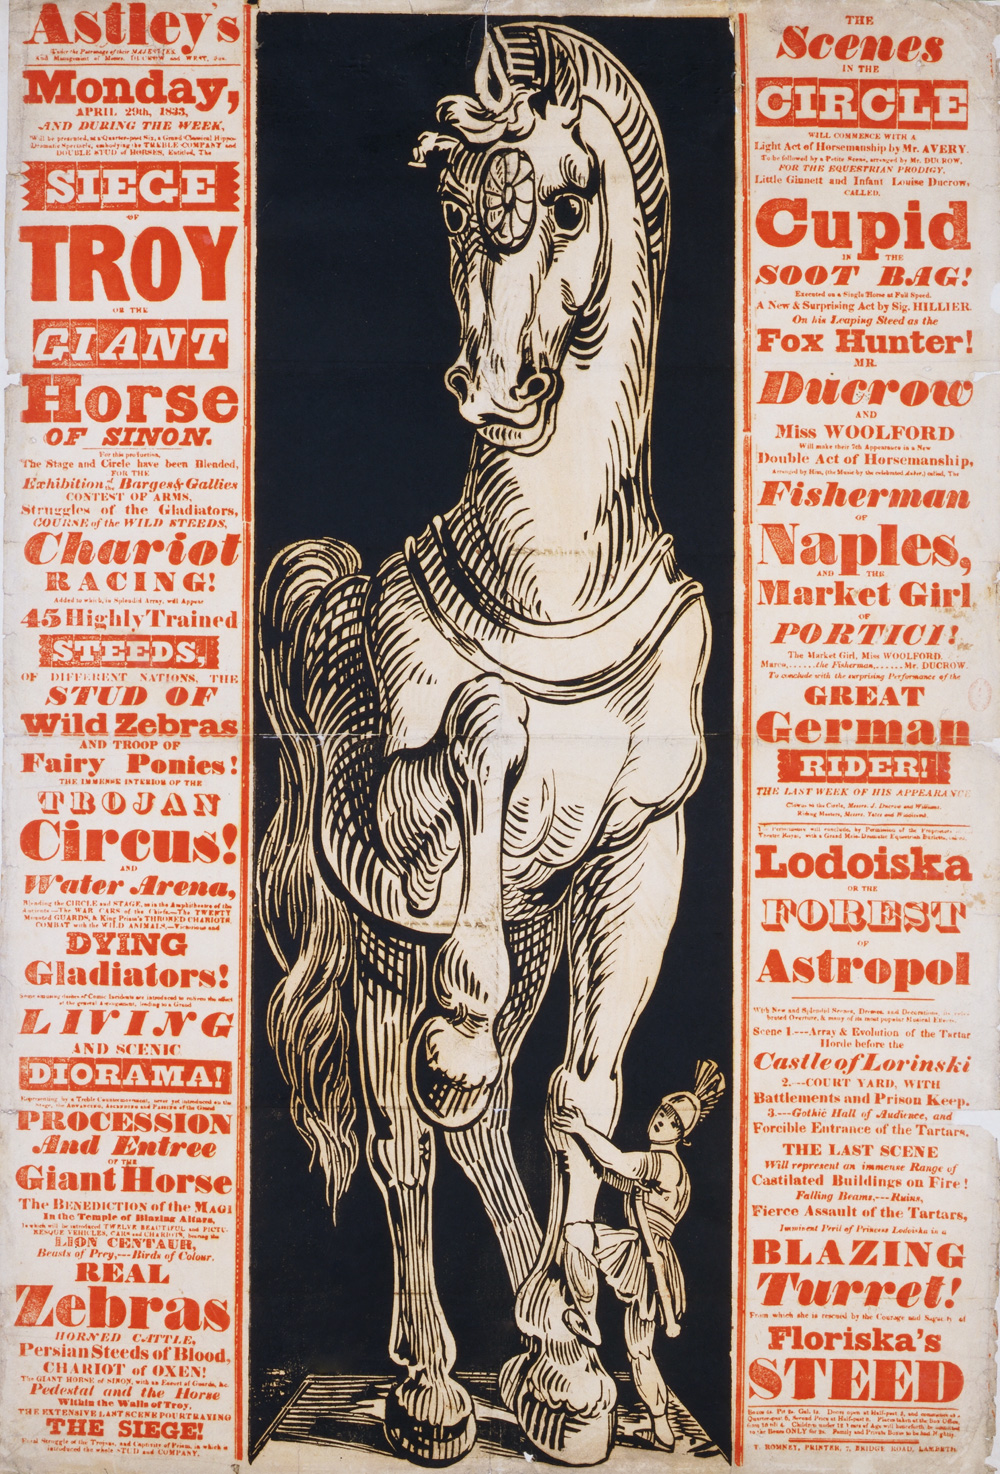 Theatre Posters - Victoria and Albert Museum